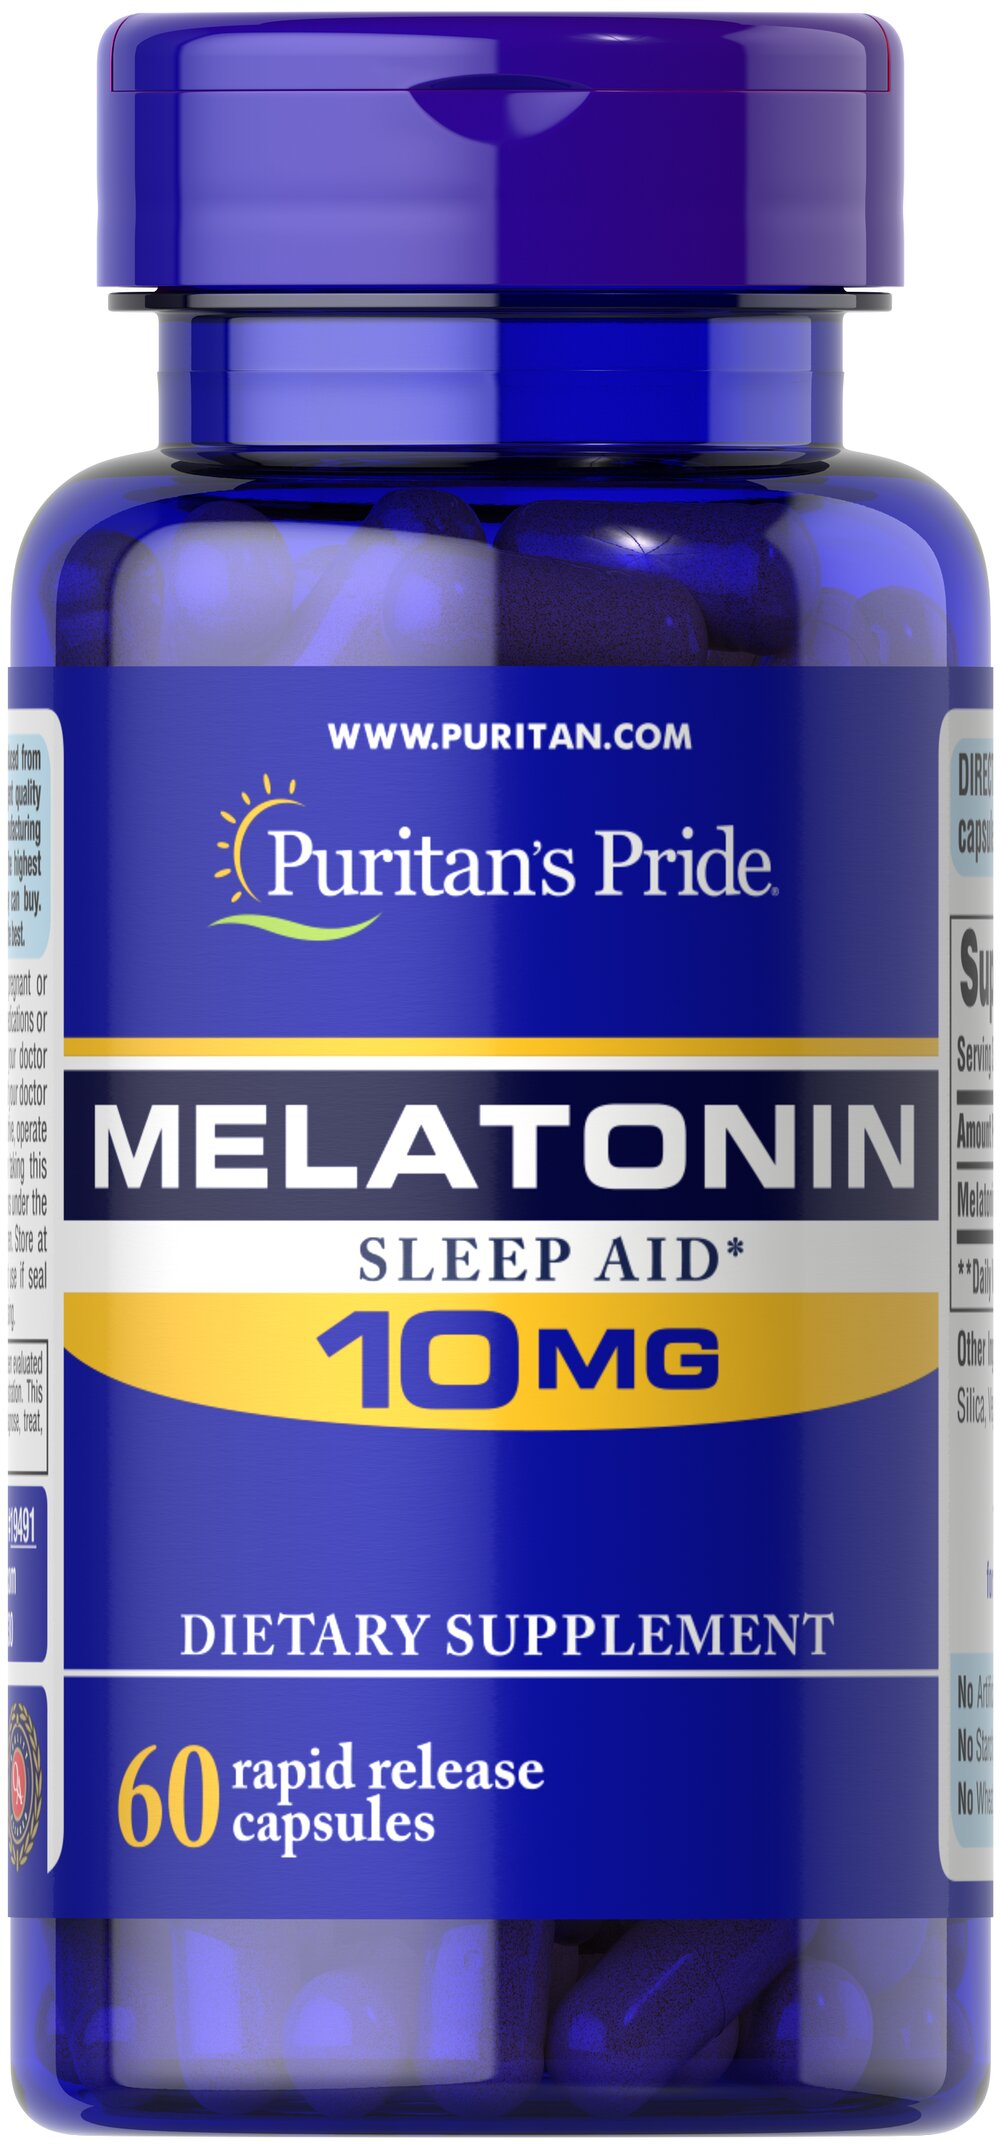 Melatonin 10 mg <p>Sometimes it's hard to unwind after a long day. That's when it's time for Melatonin, a hormone naturally produced in the body that is closely involved in the natural sleep cycle.** It's a terrific choice if you experience occasional sleeplessness or jet lag, or if you want to improve your quality of rest.**</p> 60 Capsules 10 mg $9.99